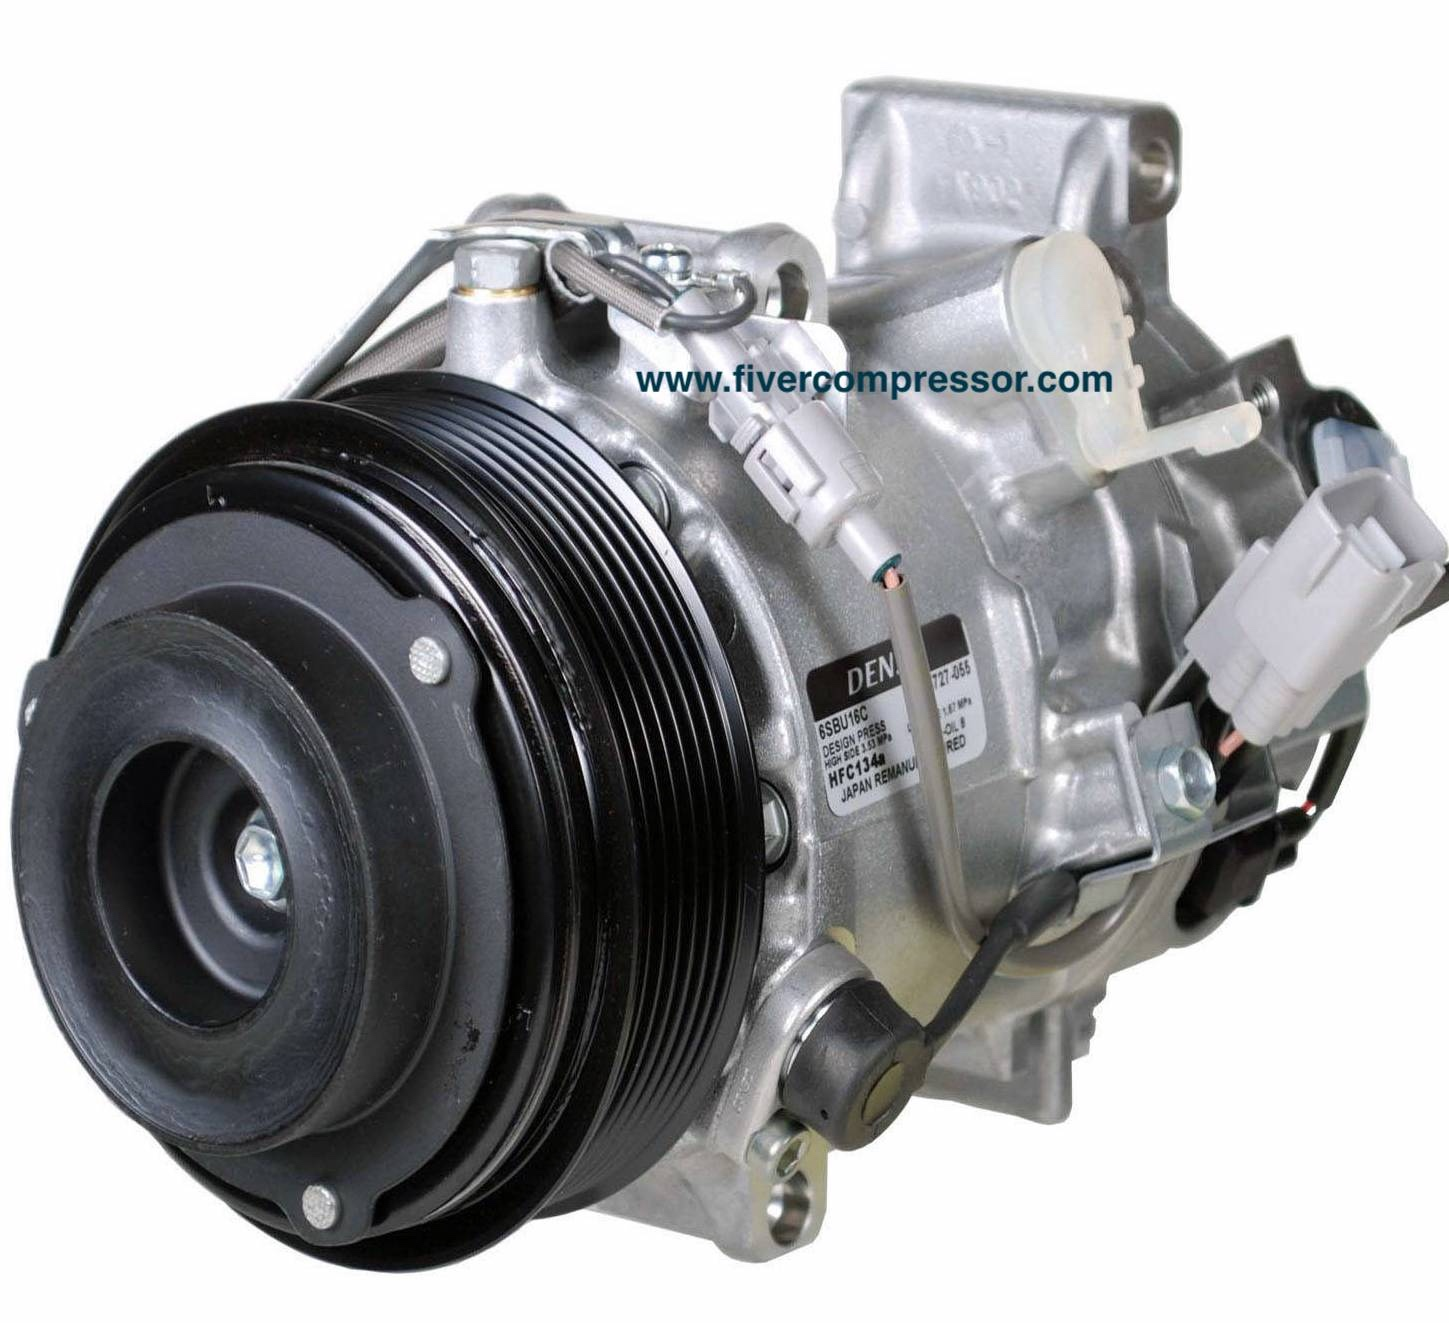 AC Compressor 883103A441, 883103A560, 8832036530, 883203A280, 883203A310 for Lexus GS350(GRS195/GRS196) Lexus IS250(GSE25) and Toyota Crown(GRS181/GRS183) 2003-2013